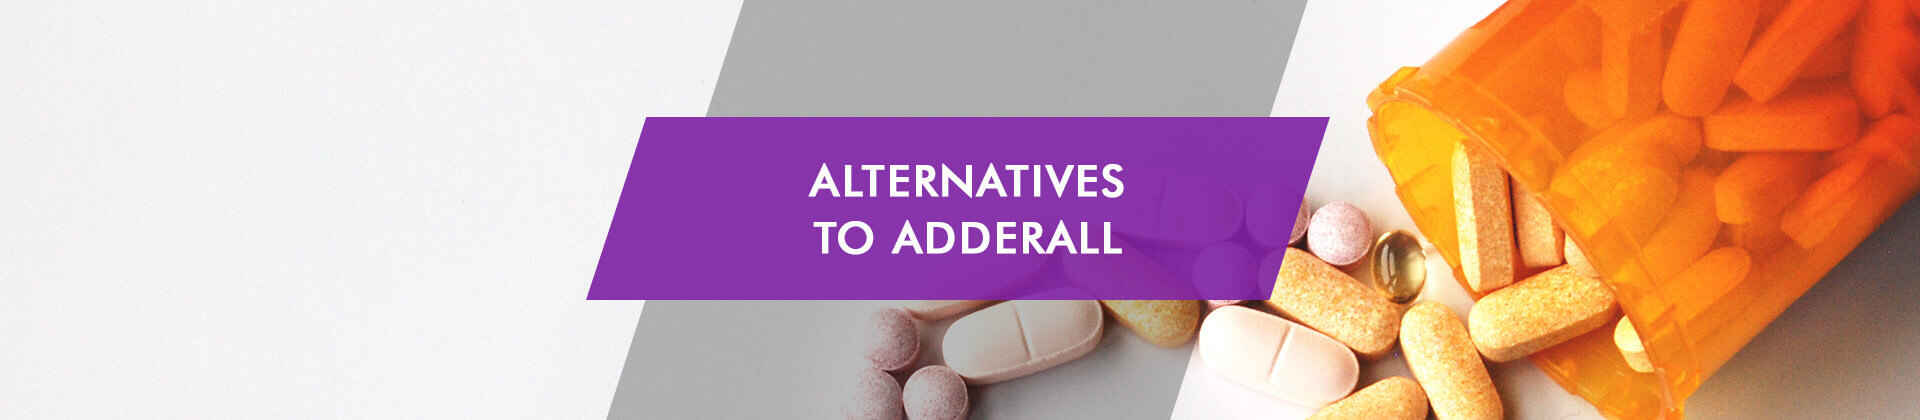 Alternatives to Adderall different pills